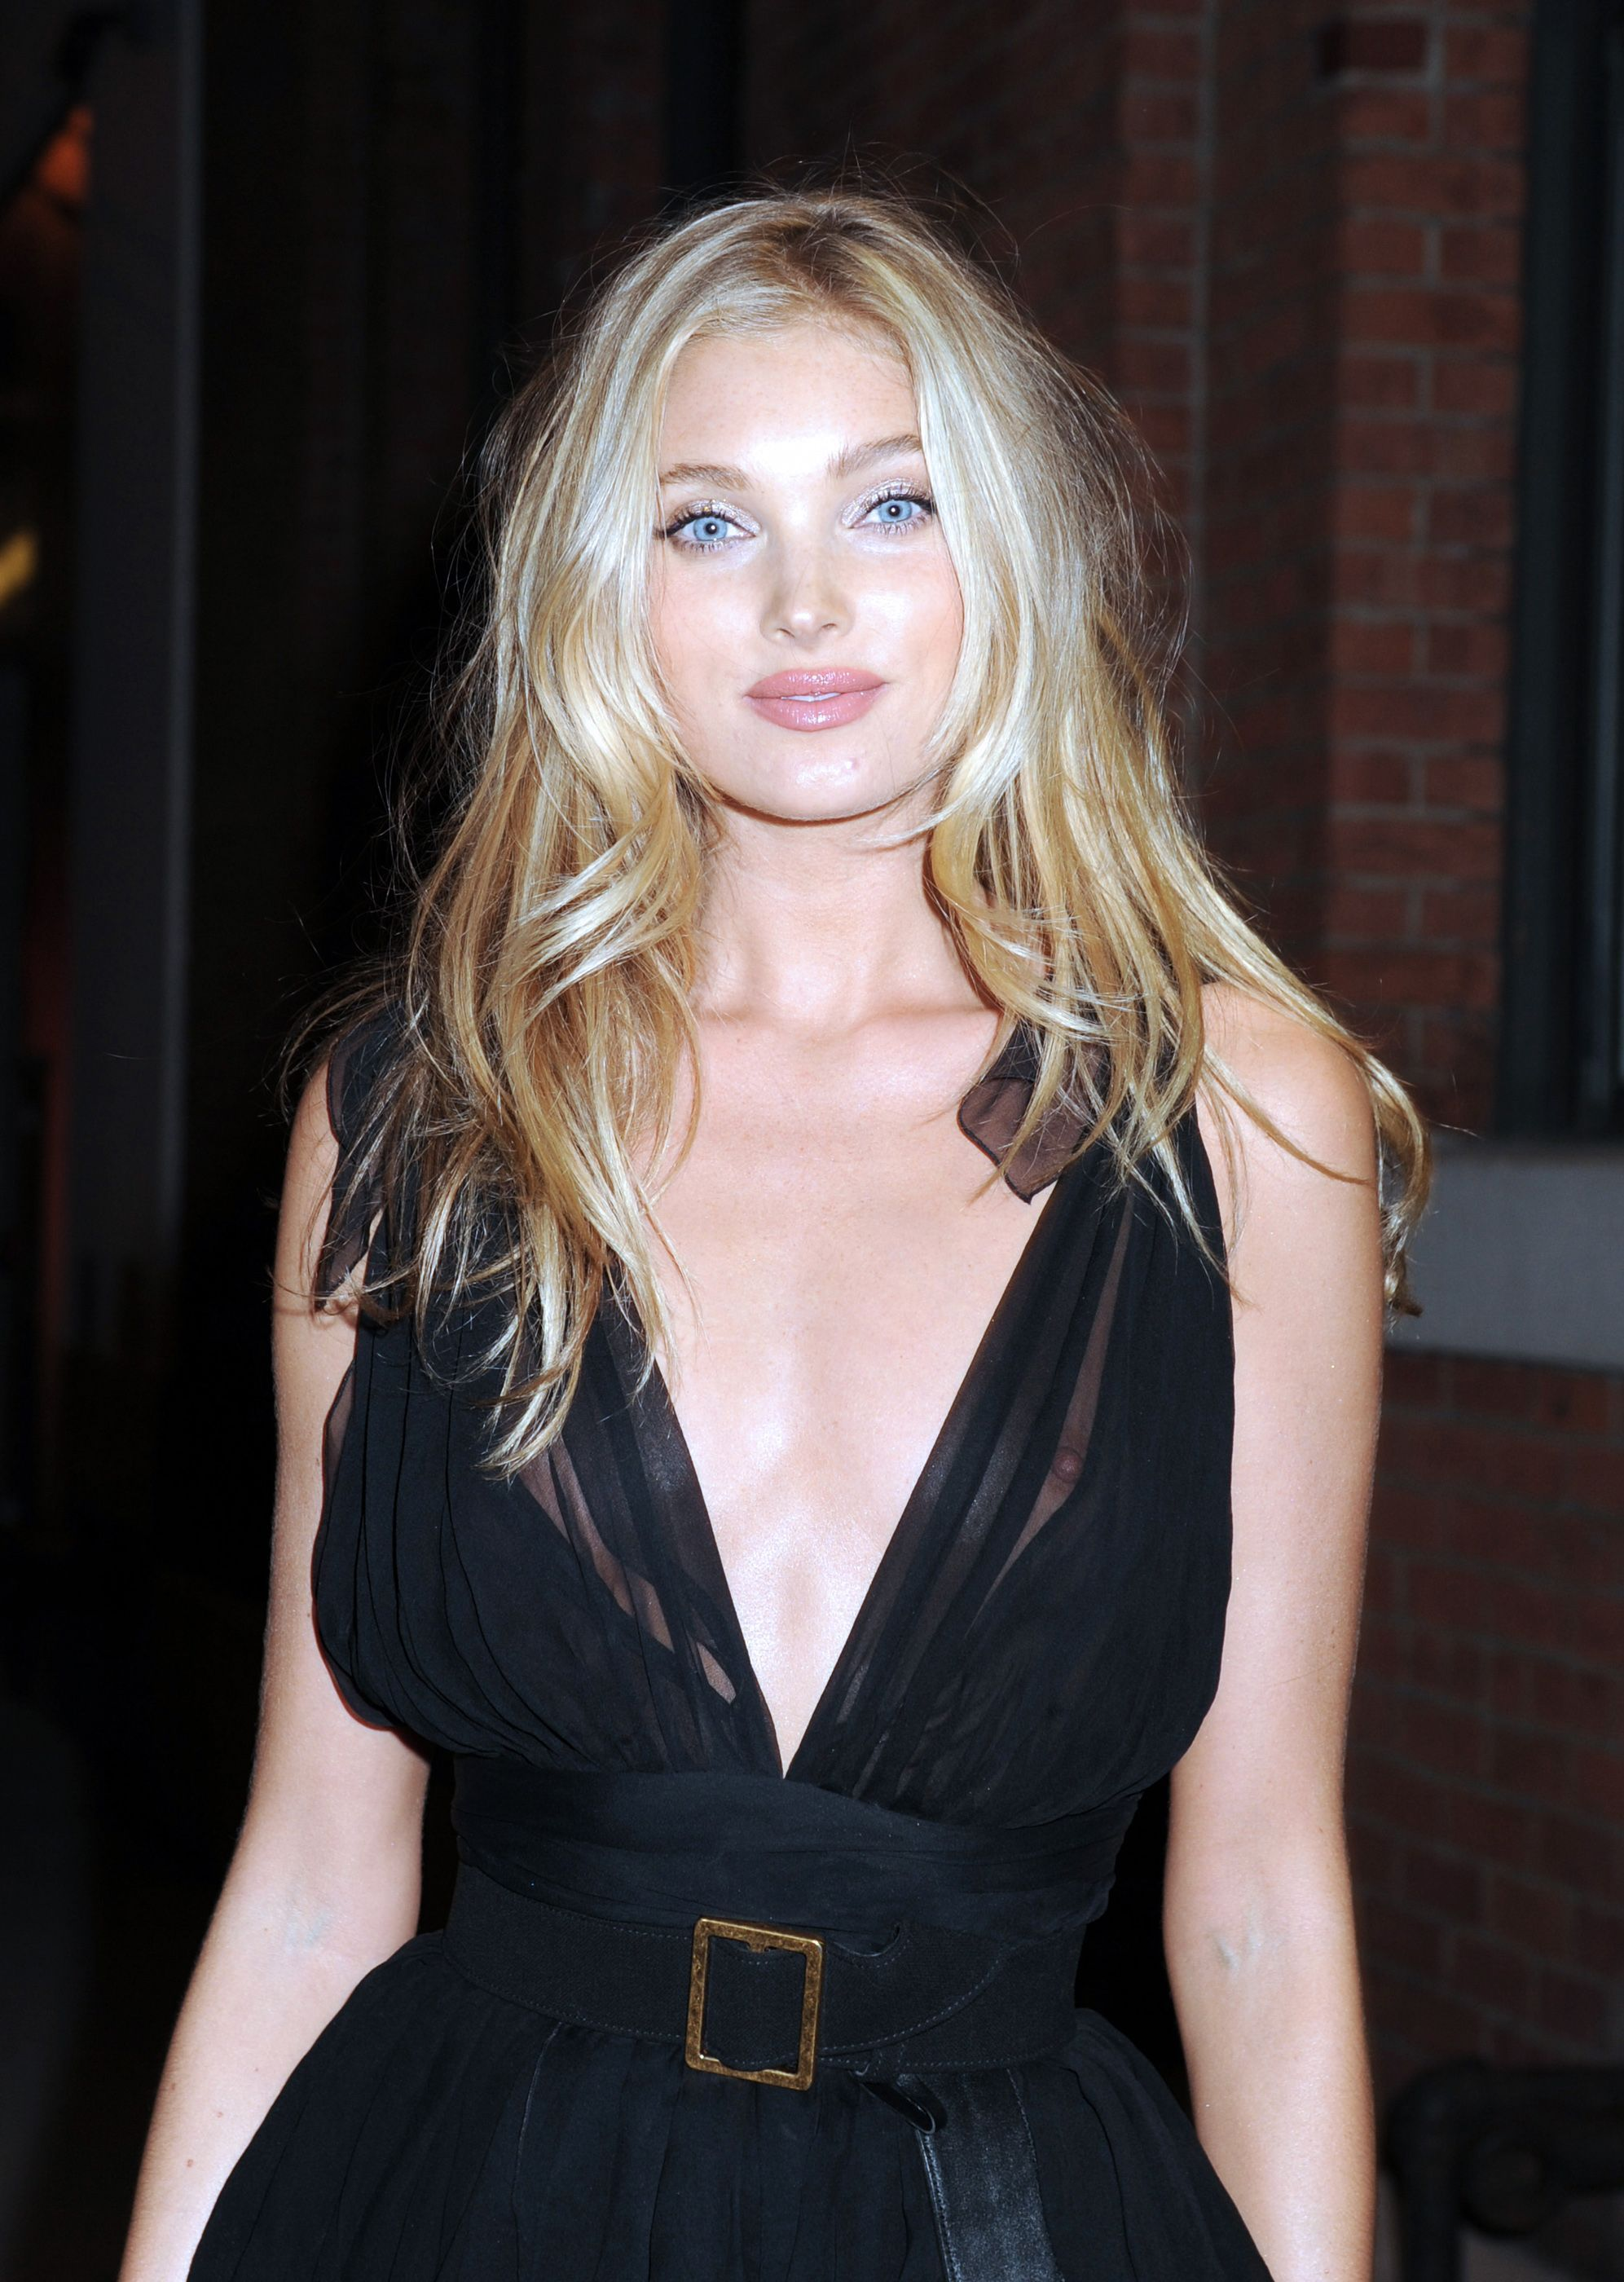 Elsa Hosk Braless Photos